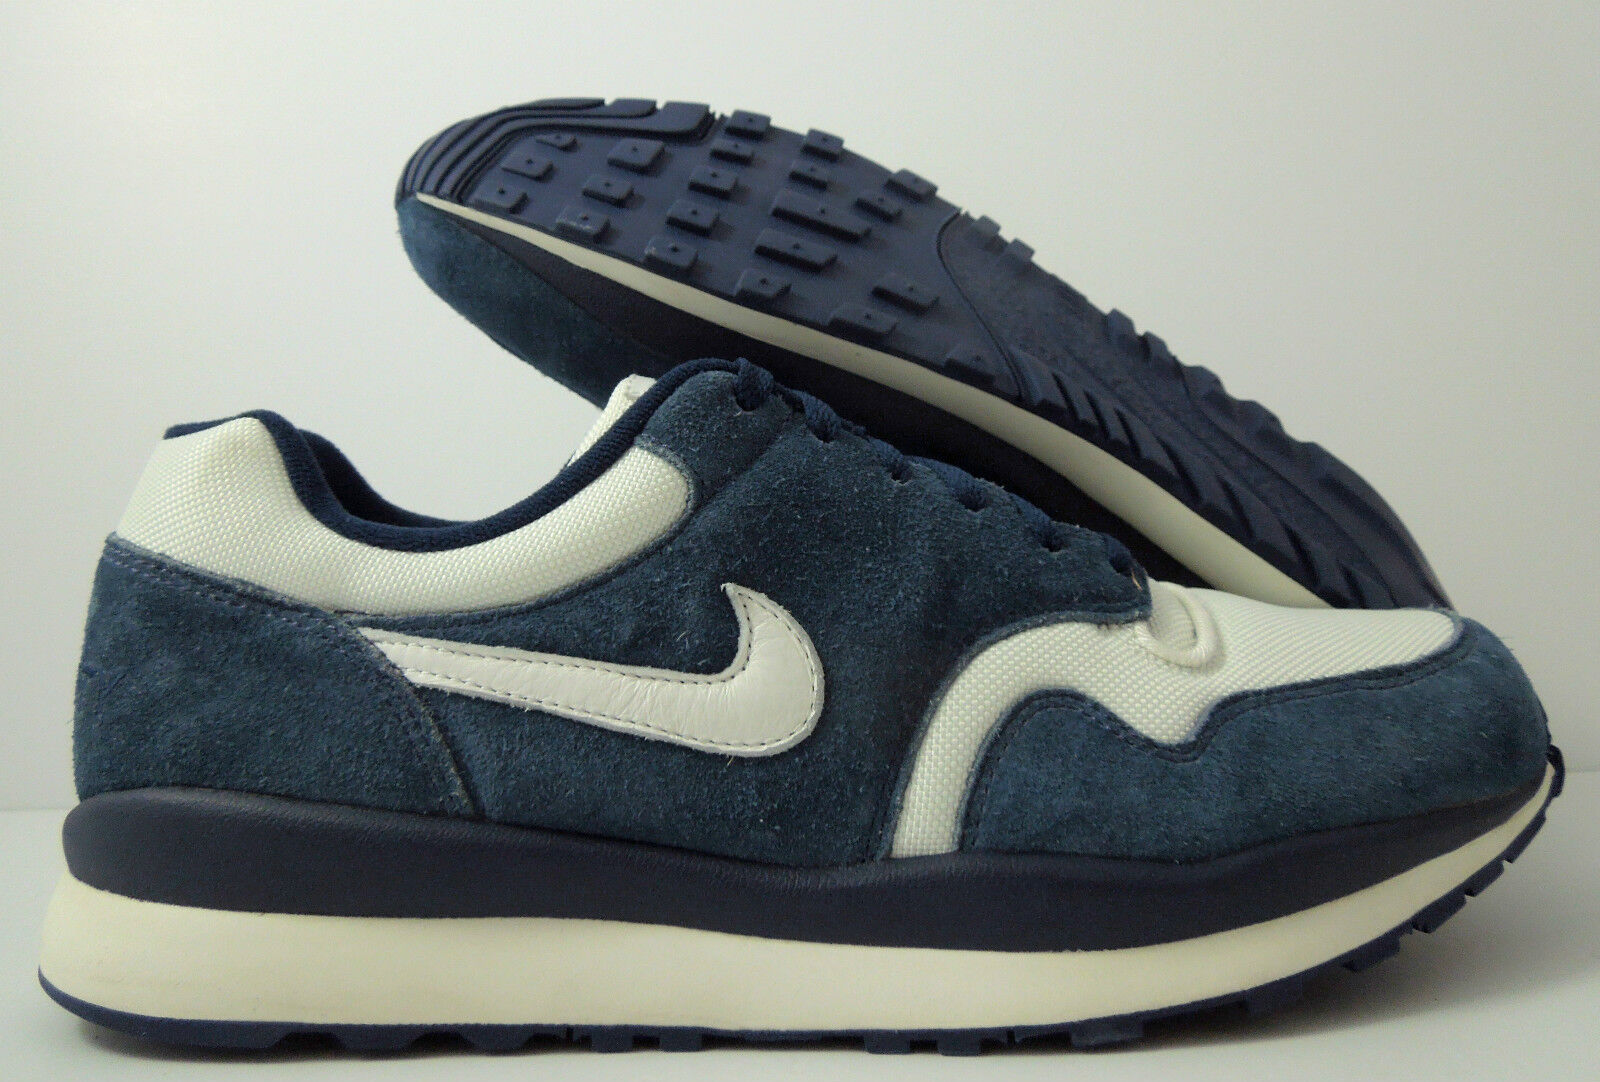 NIKE AIR SAFARI iD SLATE BLUE-IVORY Price reduction Cheap women's shoes women's shoes